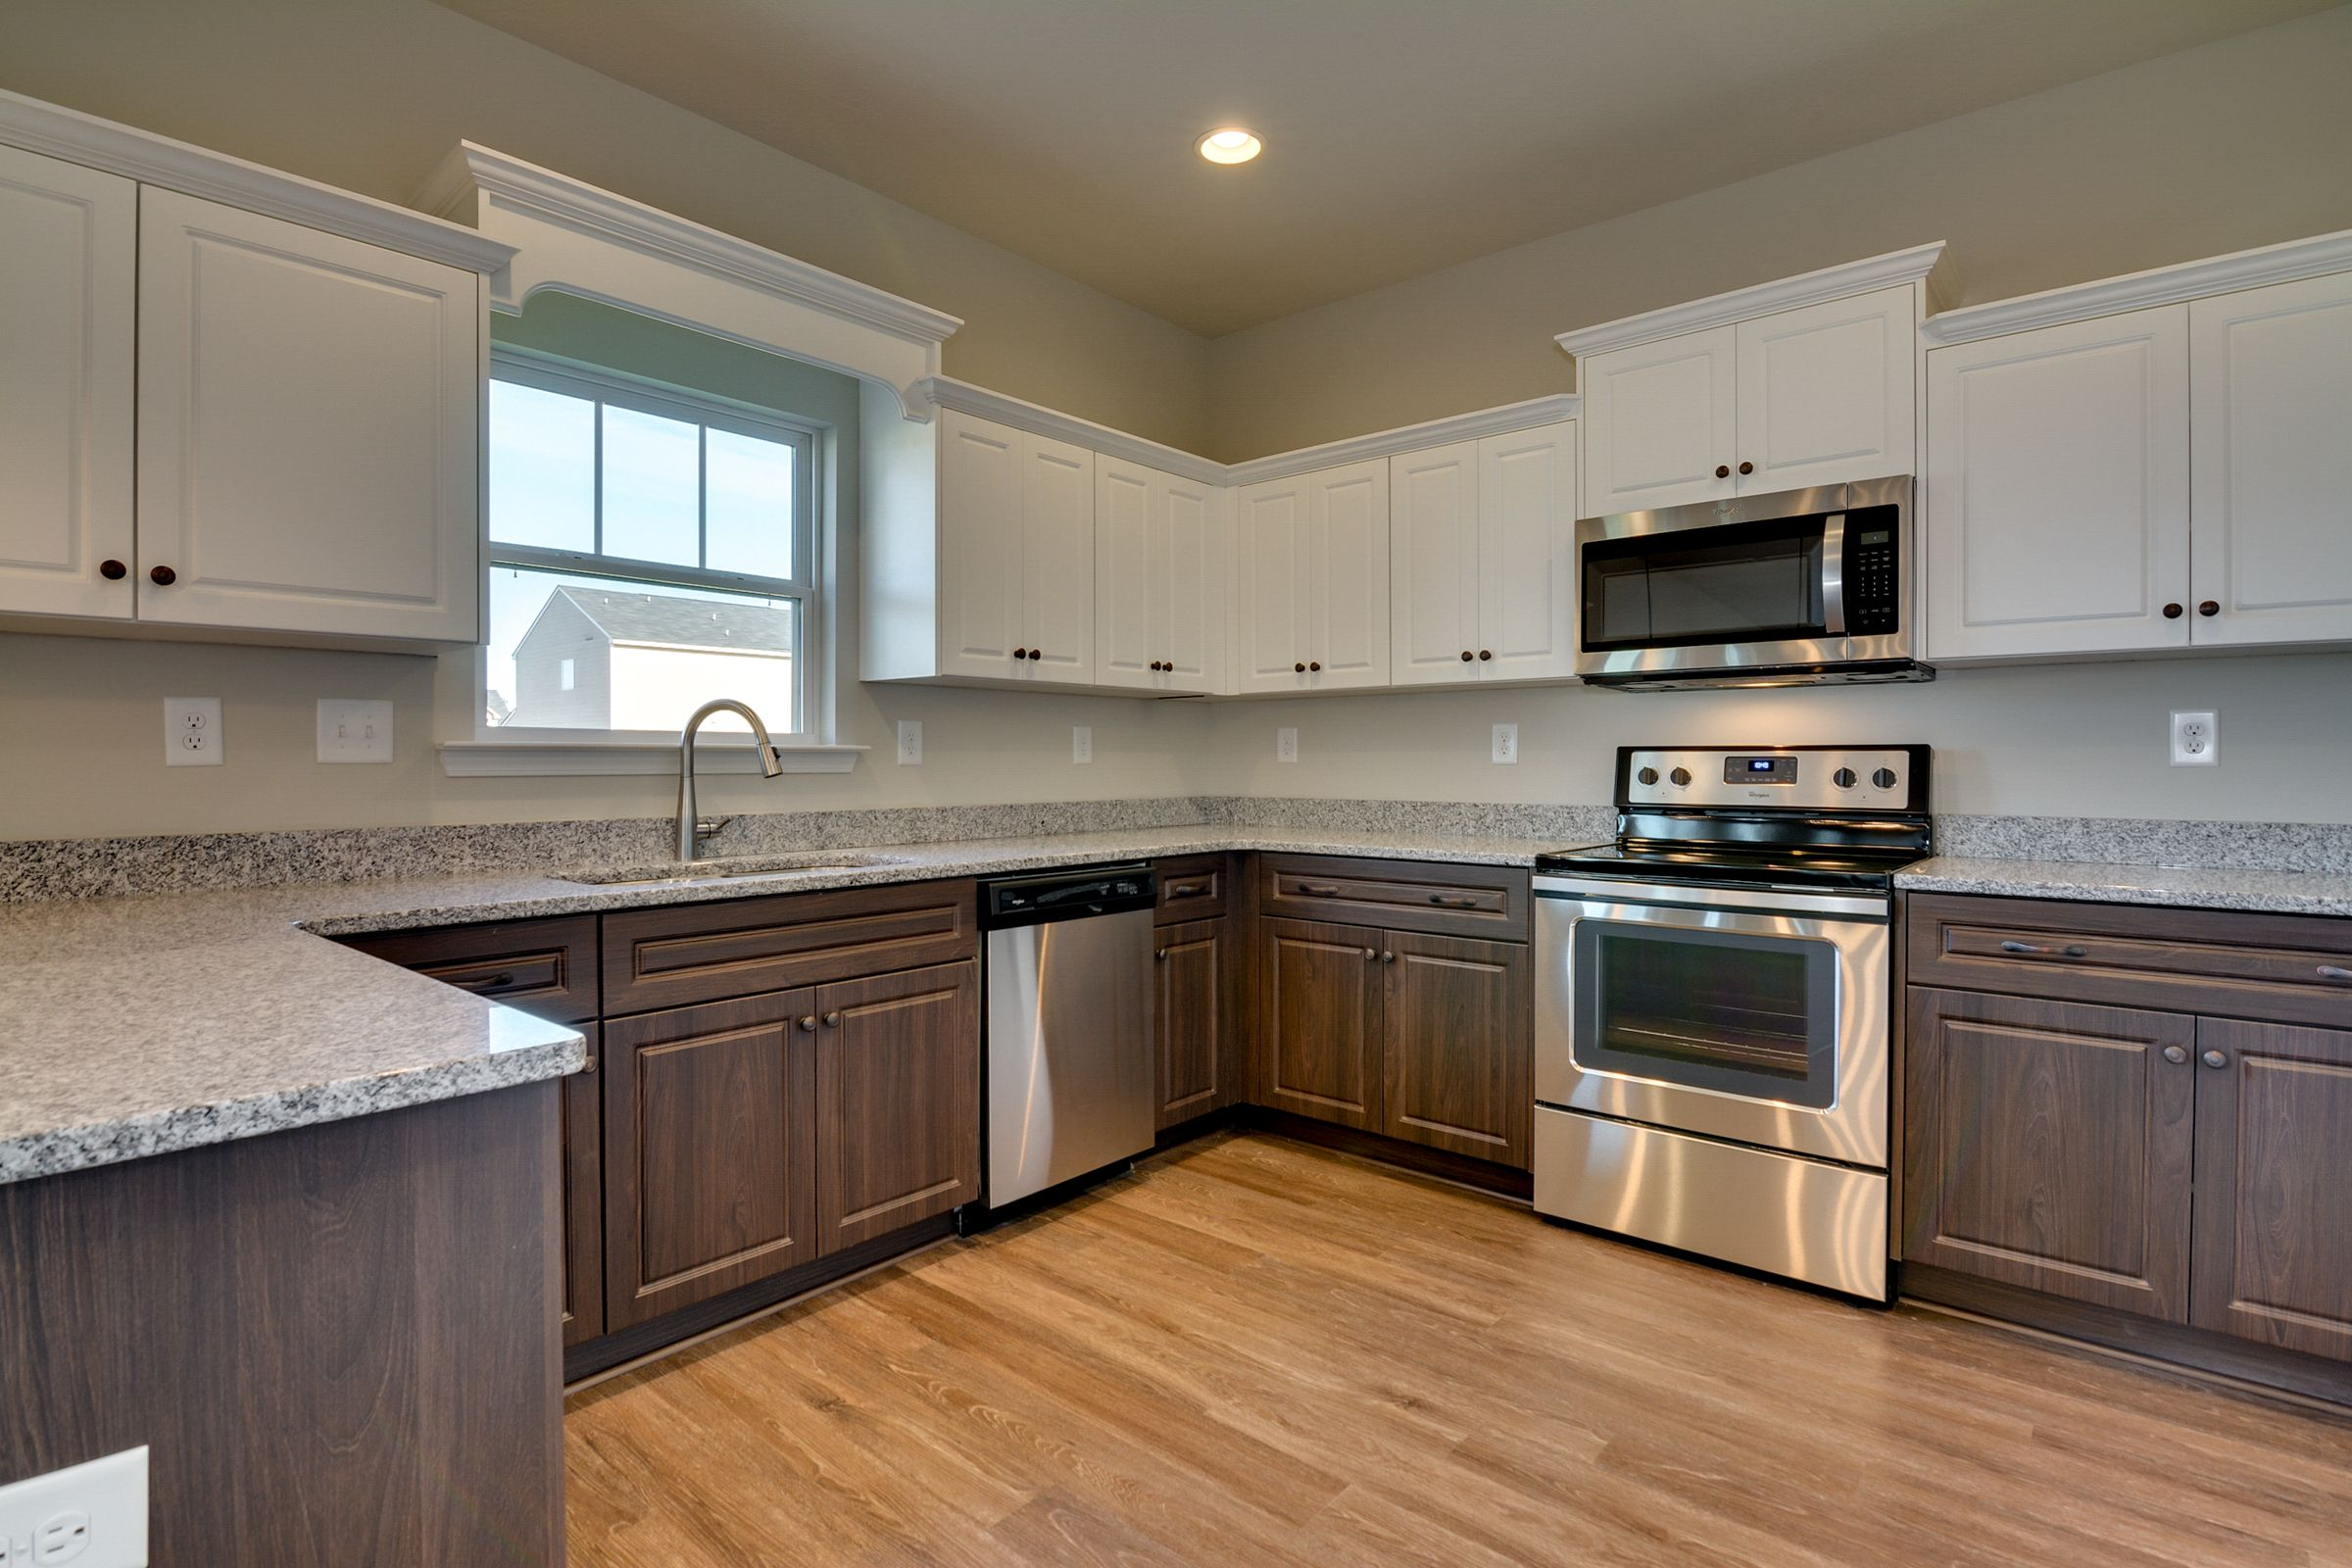 Two Toned Cabinets White Upppers And Wood Grain Vinyl On The Bottom Finding A House Keystone Homes Home